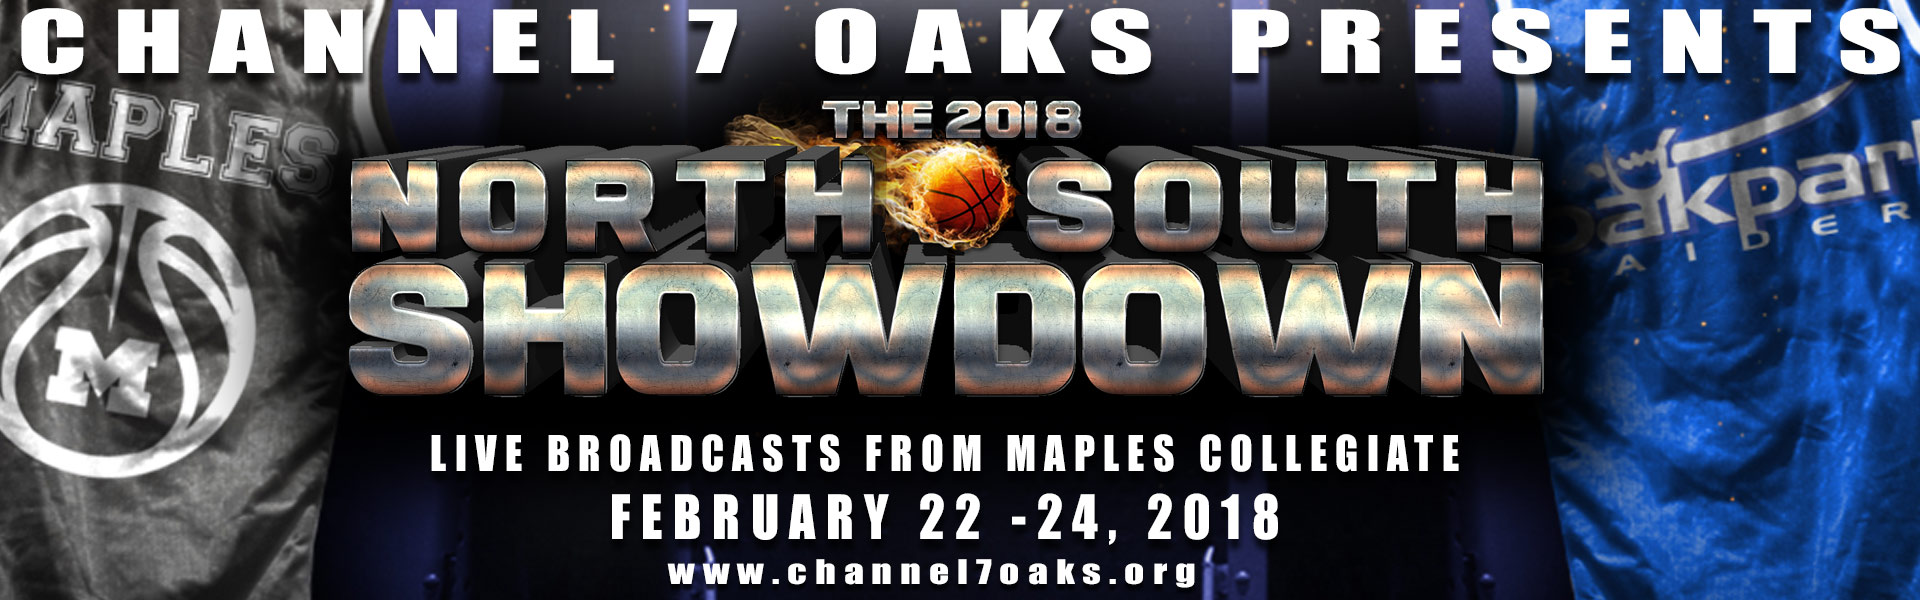 2018 North-South Showdown